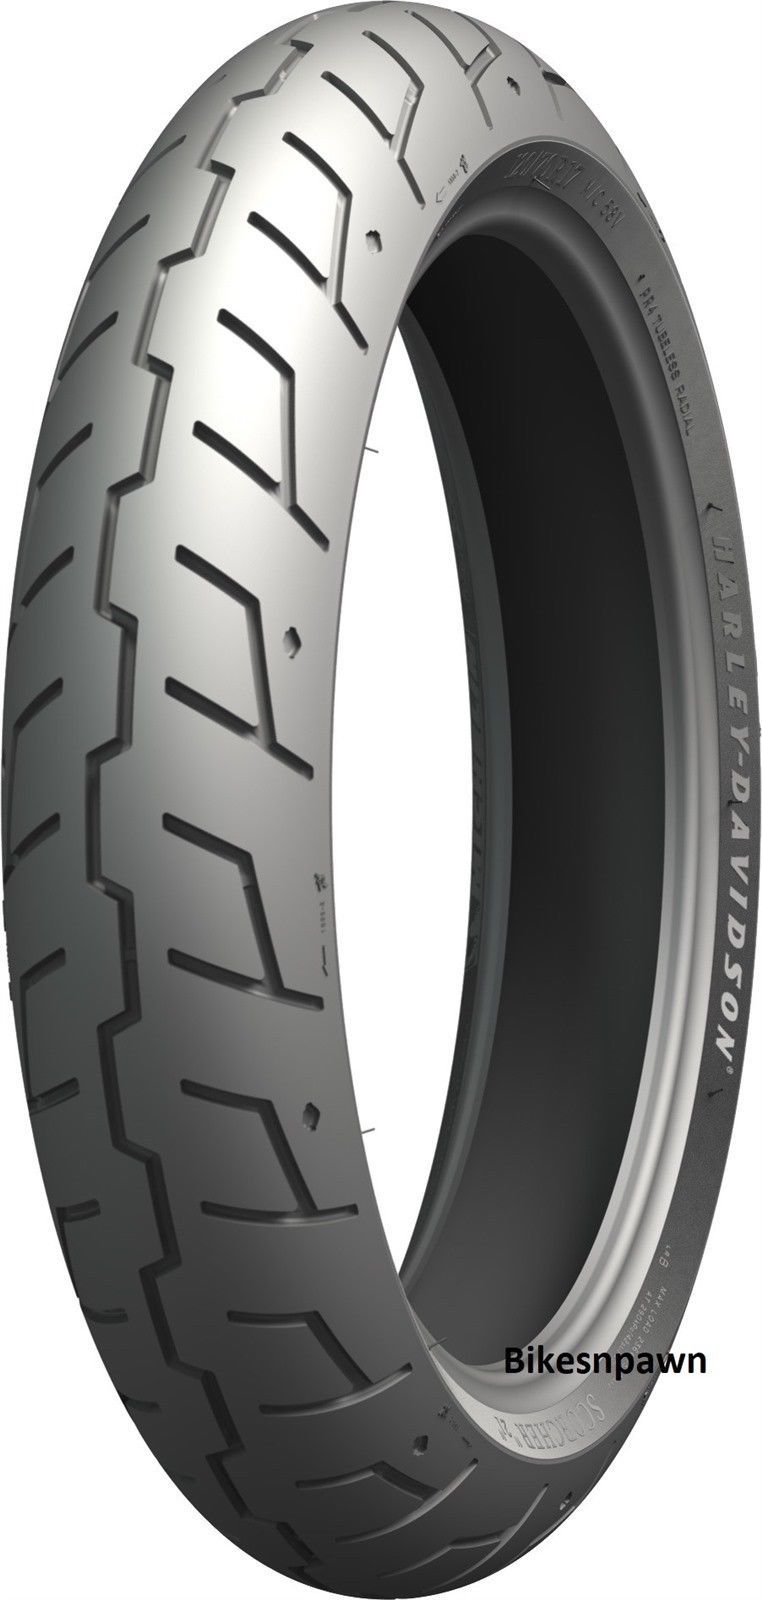 Radial 160/60R17 Michelin Scorcher 21 Harley Davidson Rear Tire 69V Motorcycle